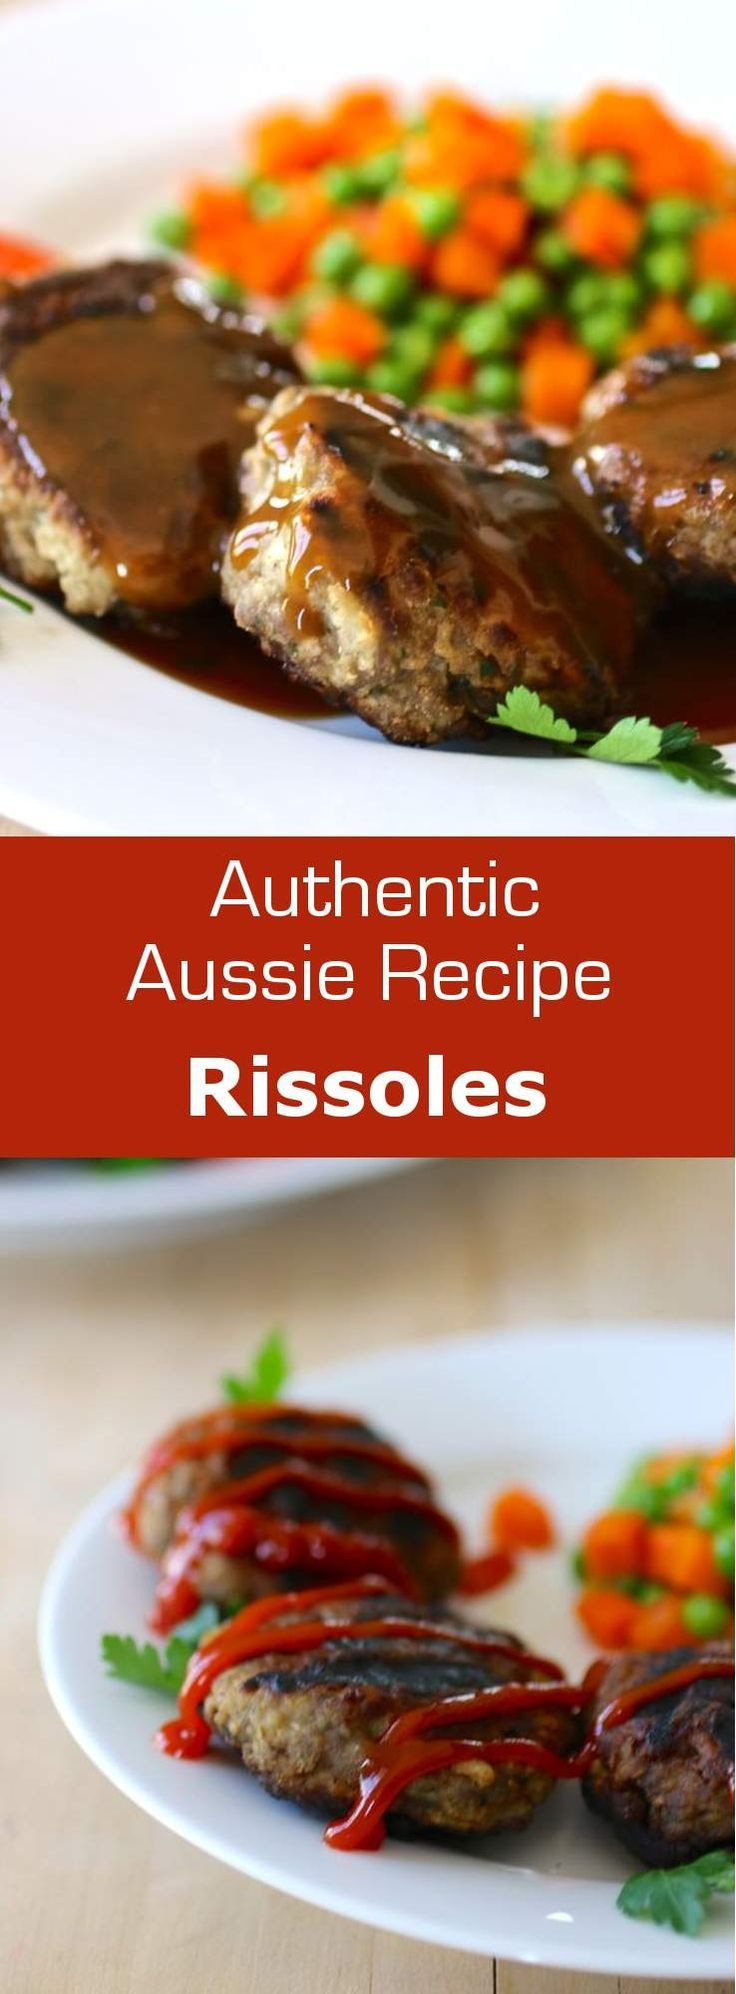 473 best australian nz cuisine images on pinterest ethnic australian rissoles are meat patties that are grilled on the bbq depending on the recipe these patties can include grated vegetables forumfinder Gallery